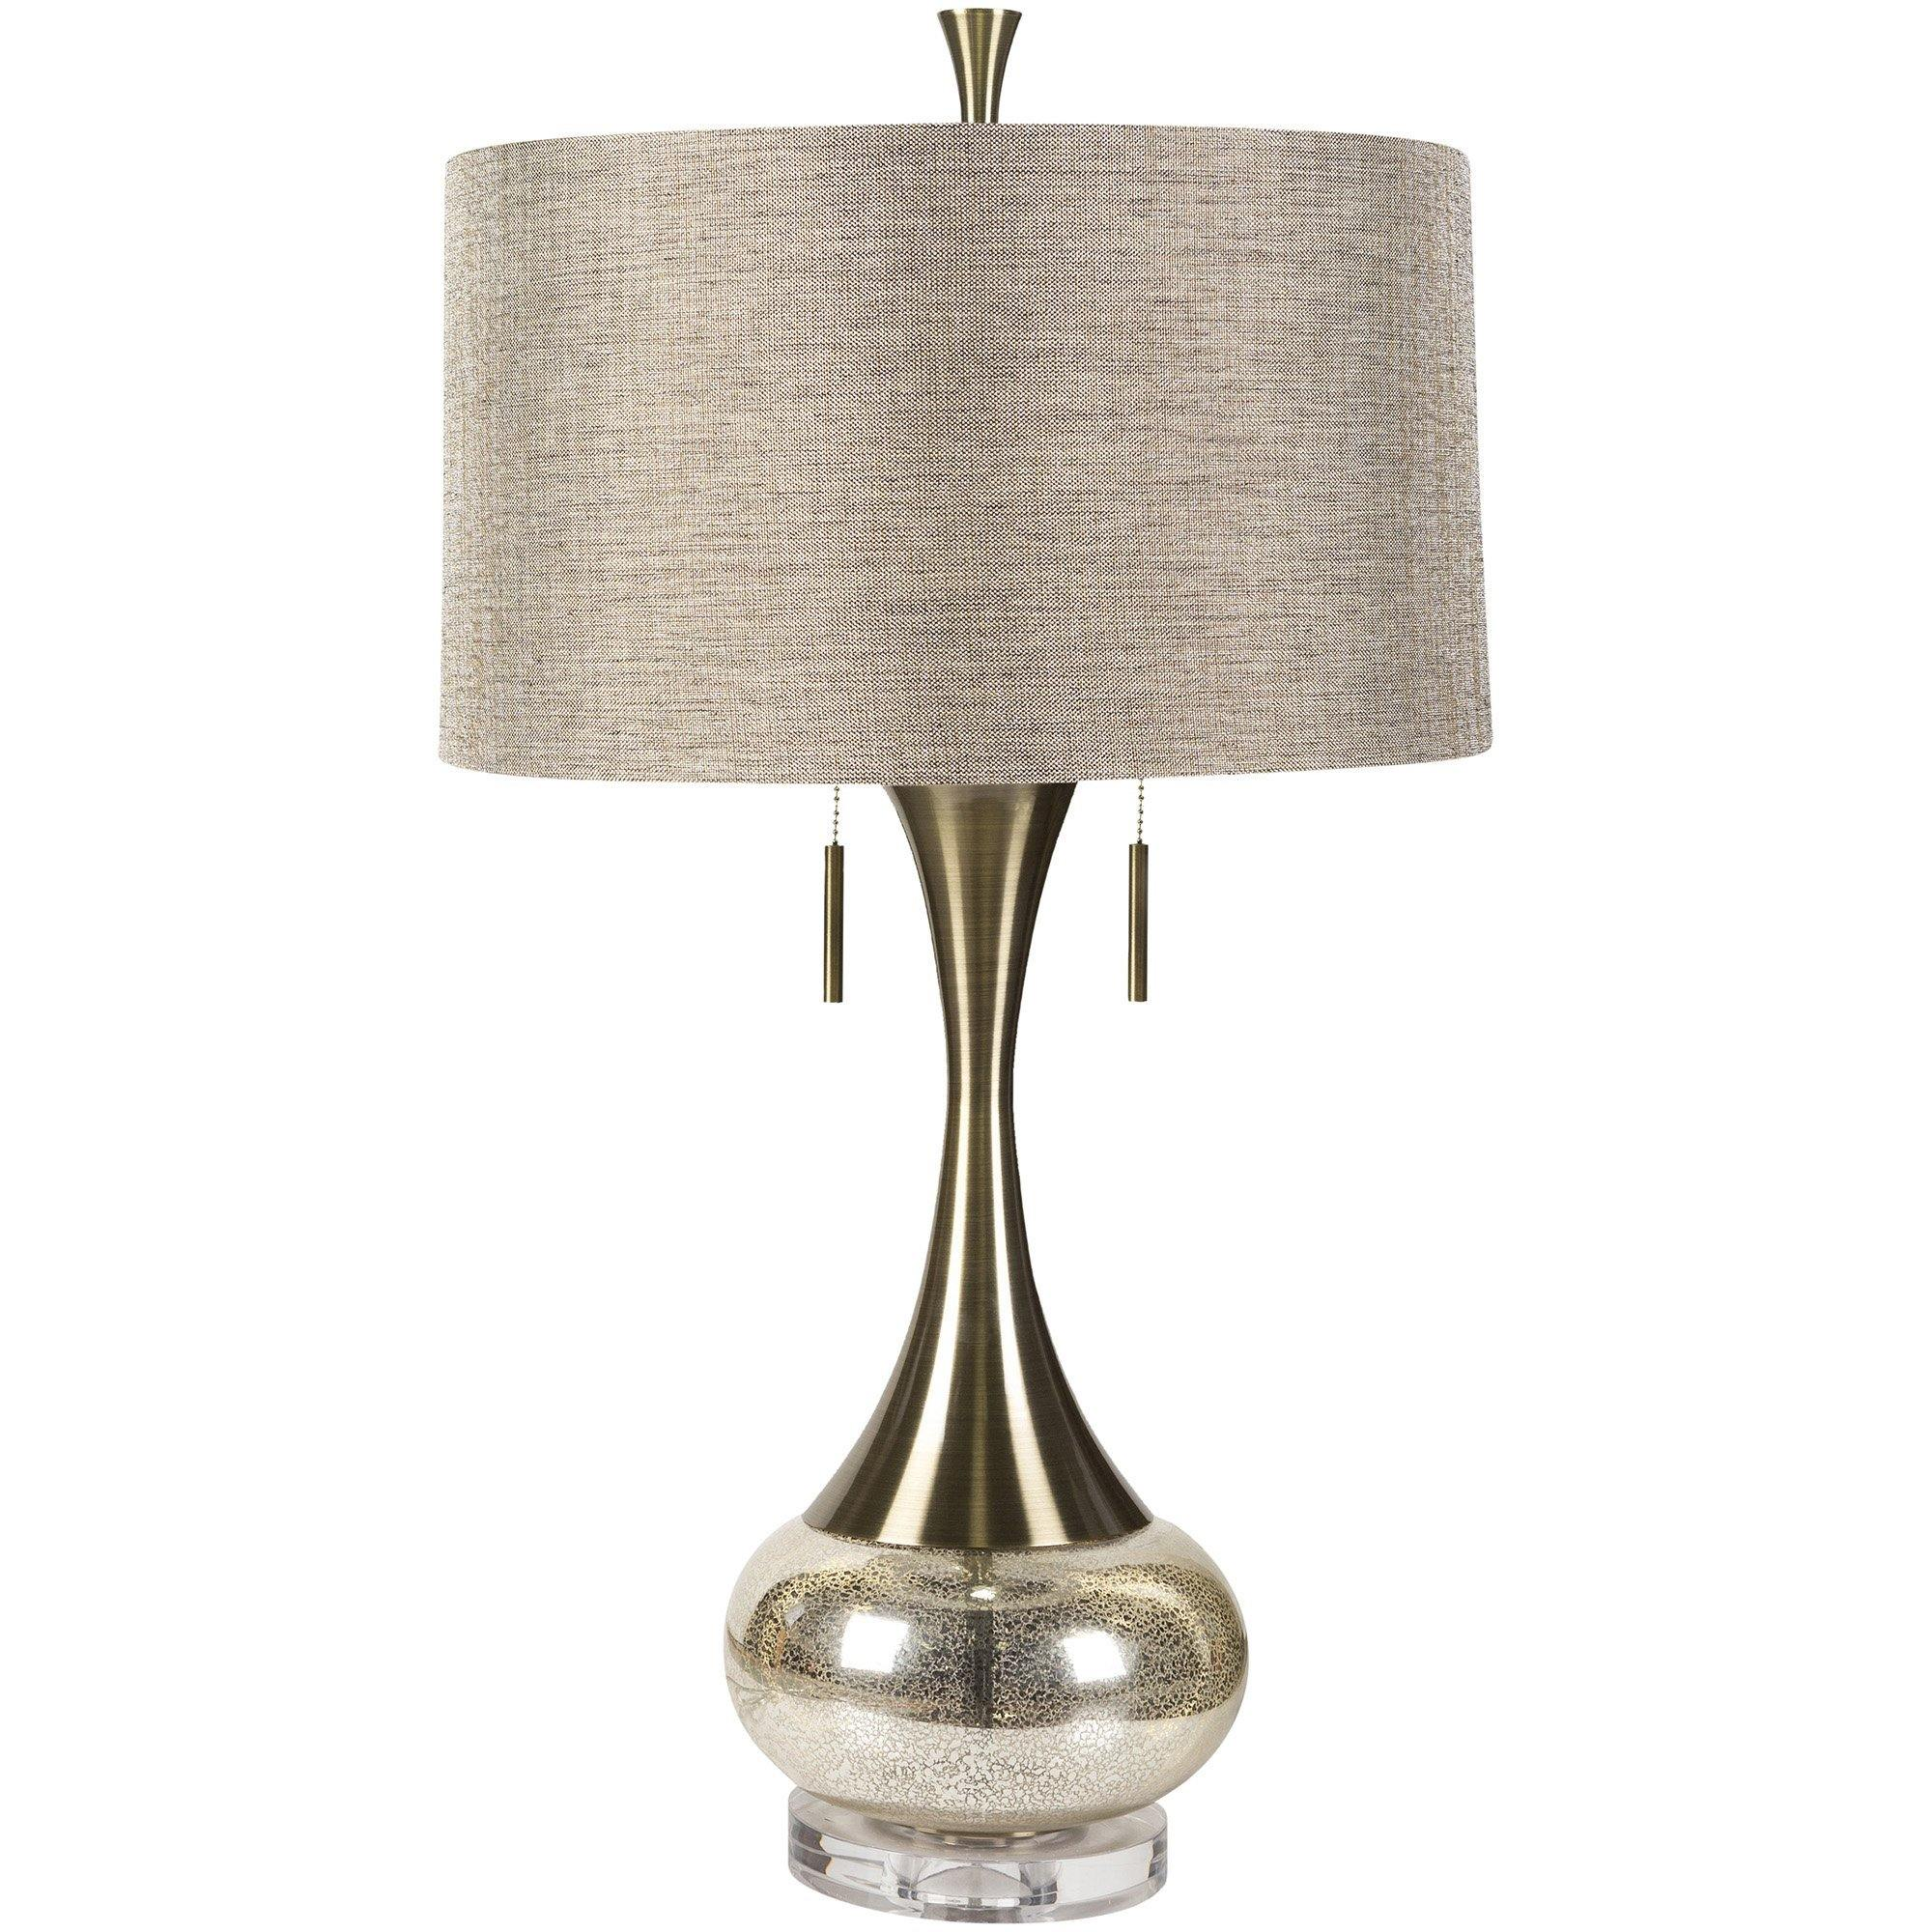 aged brass modern table lamp